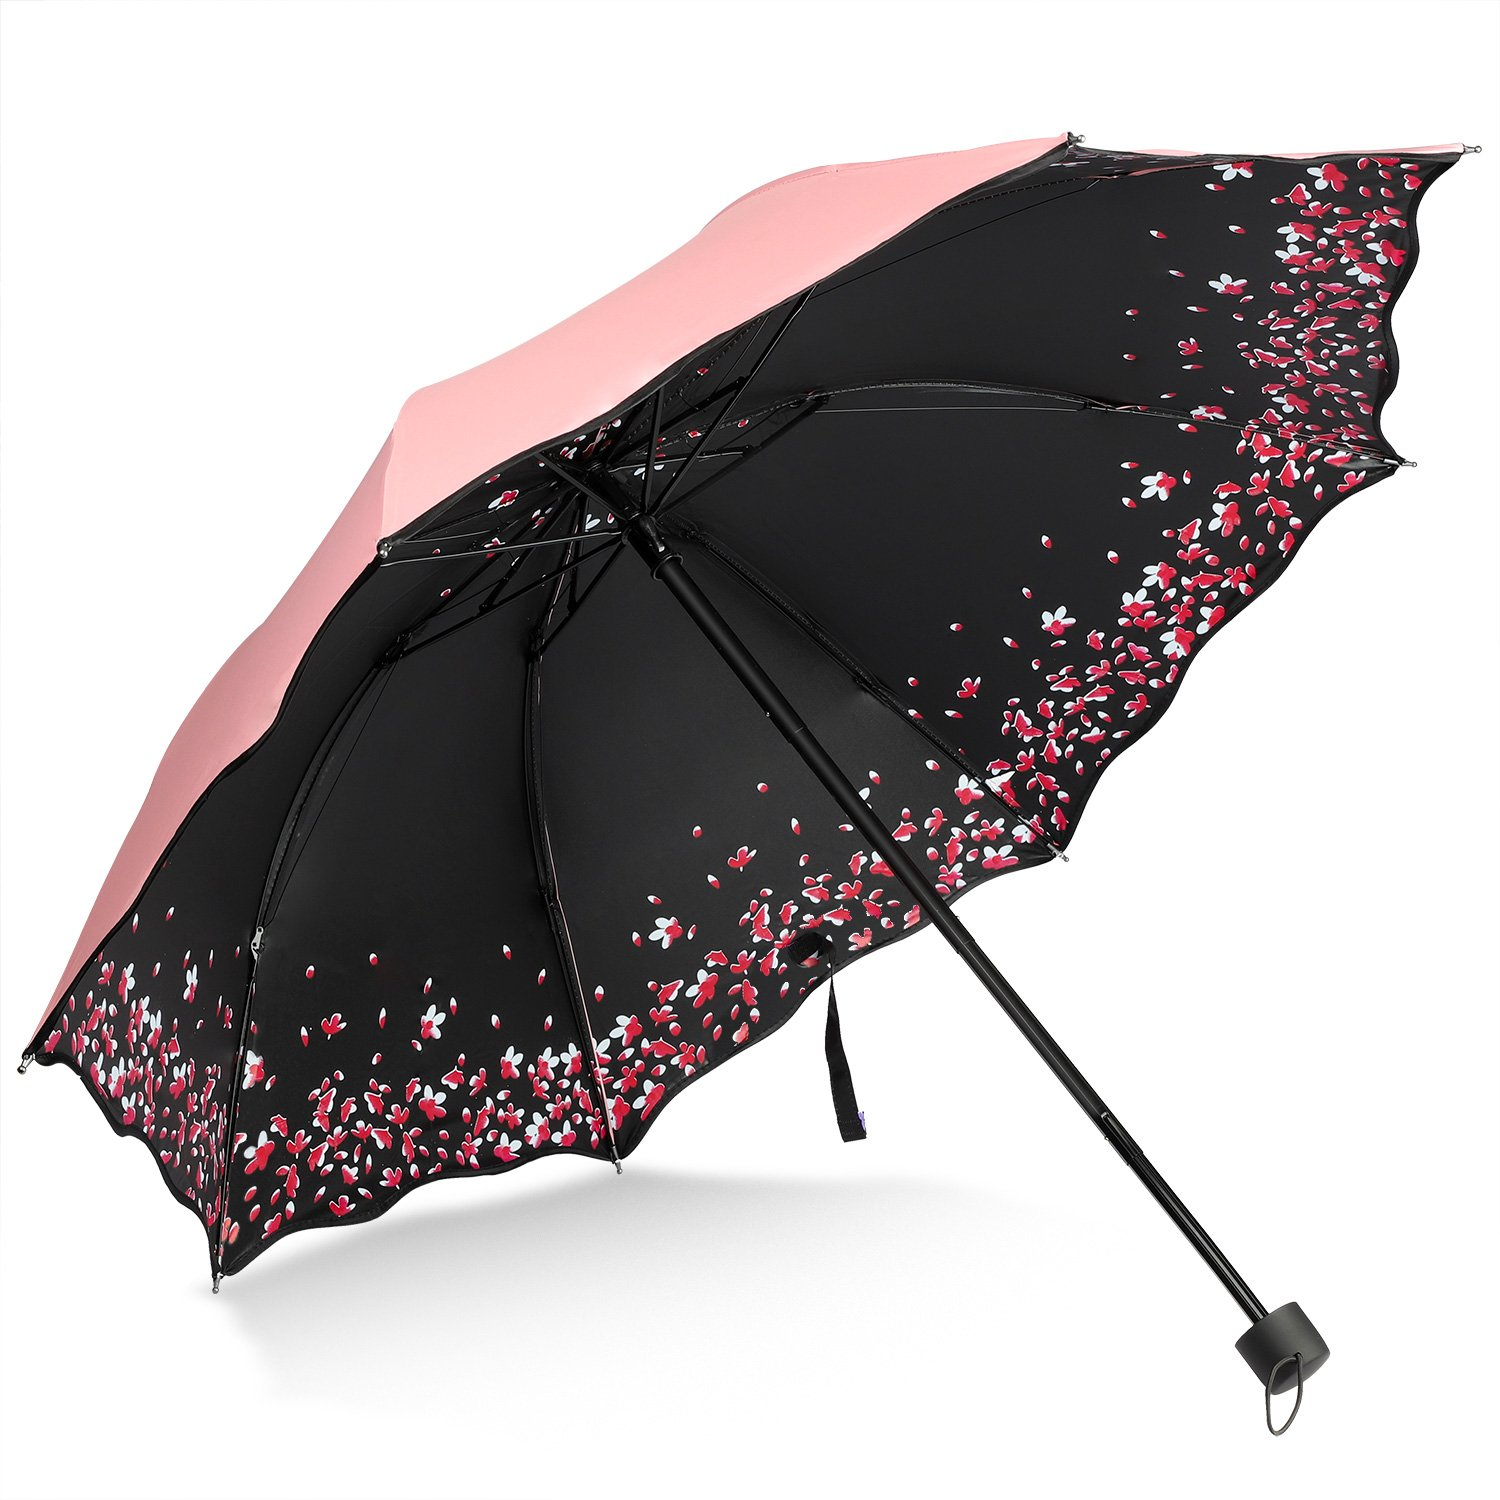 Sakura Umbrella-Windproof Anti UV Rain/Sun, Cherry Blossom Folding Umbrella